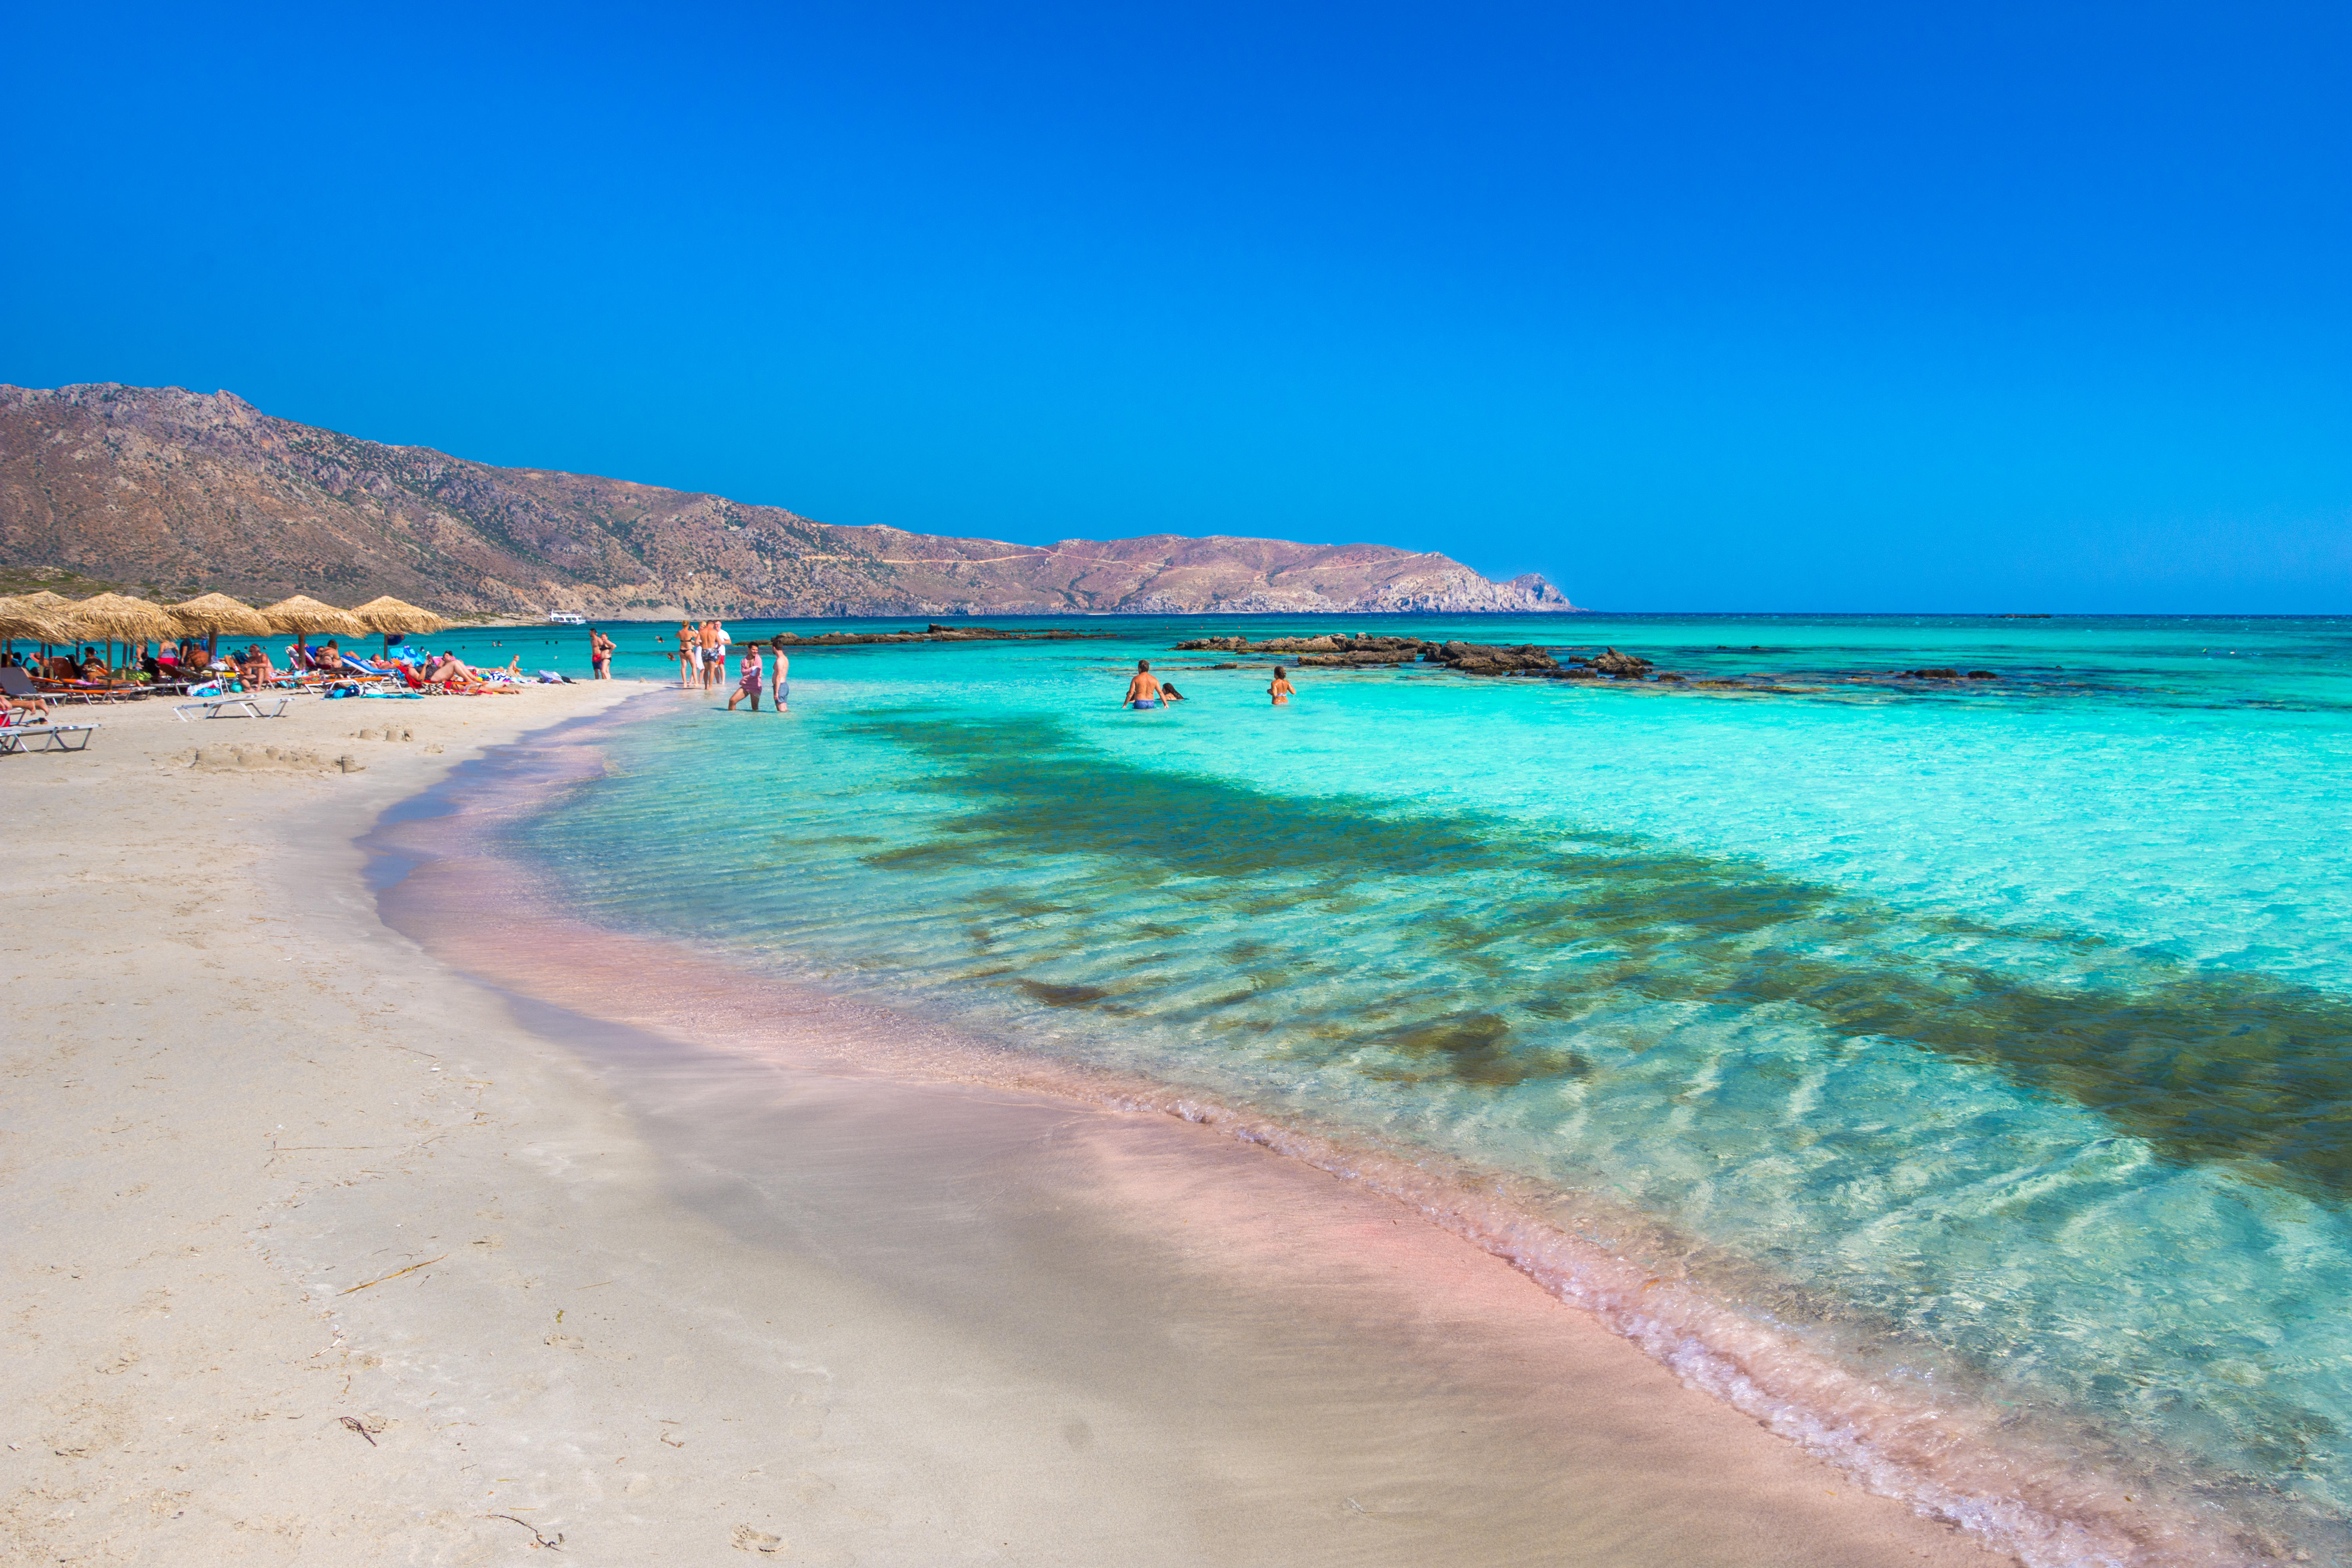 Tropical sandy beach with turquoise water, in Elafonisi, Crete